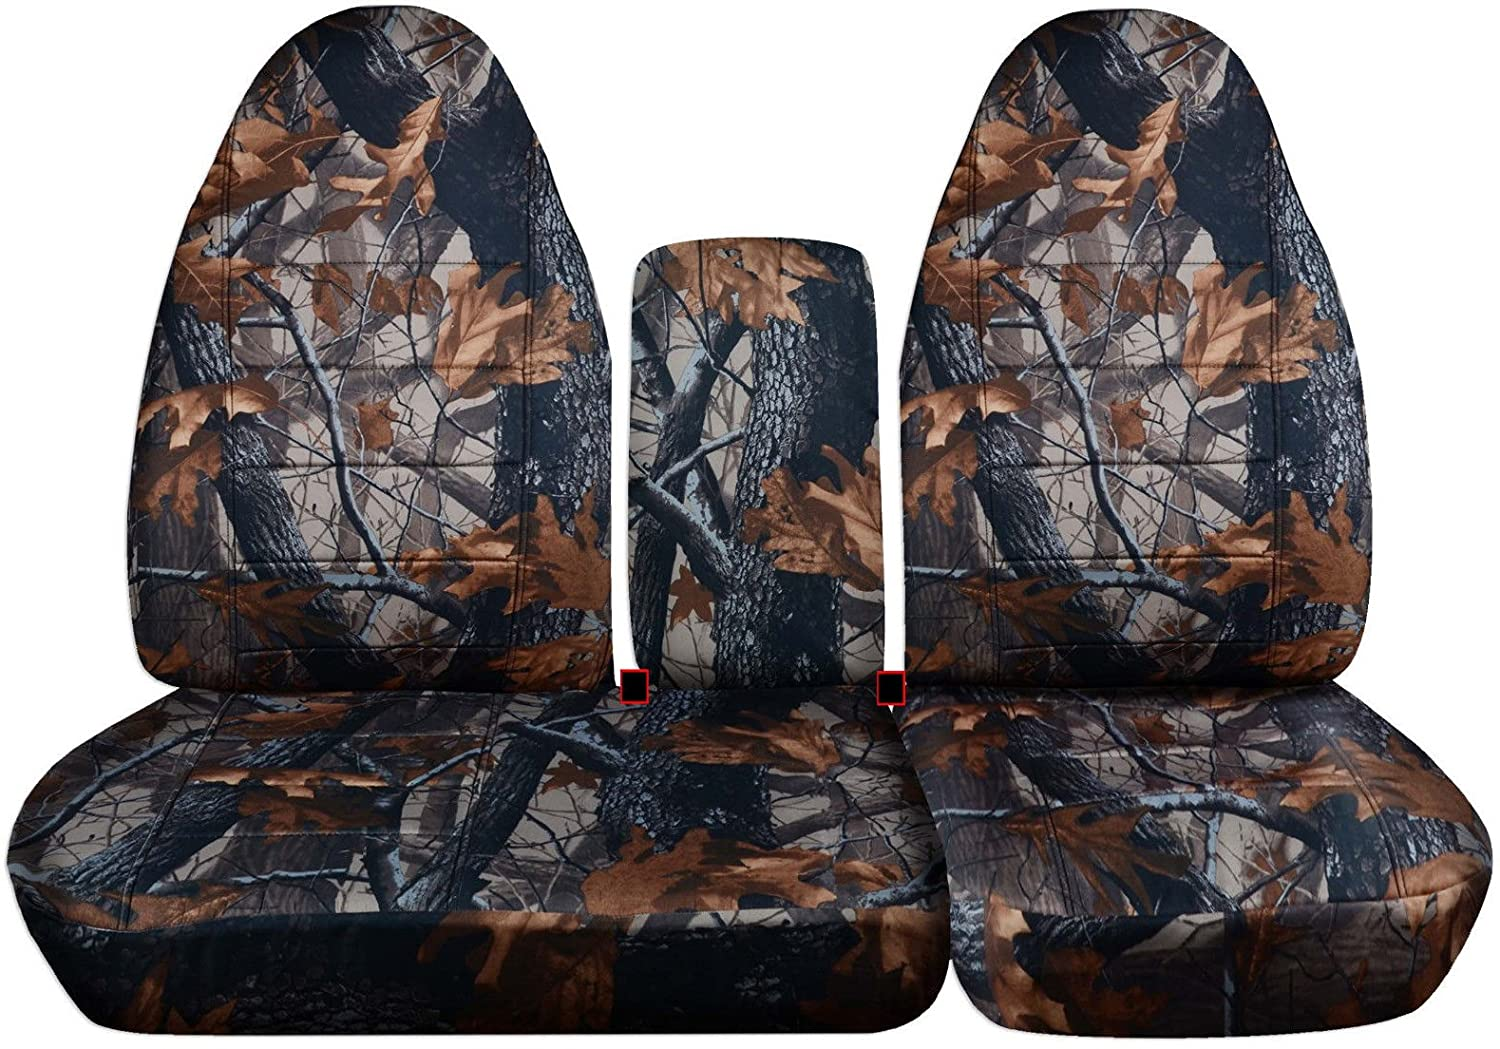 Surprising 1997 2000 Ford F 150 Camo Truck Seat Covers Front 40 60 Split Bench With Opening Center Console Solid Armrest Wetland Camouflage 16 Prints 1998 Machost Co Dining Chair Design Ideas Machostcouk